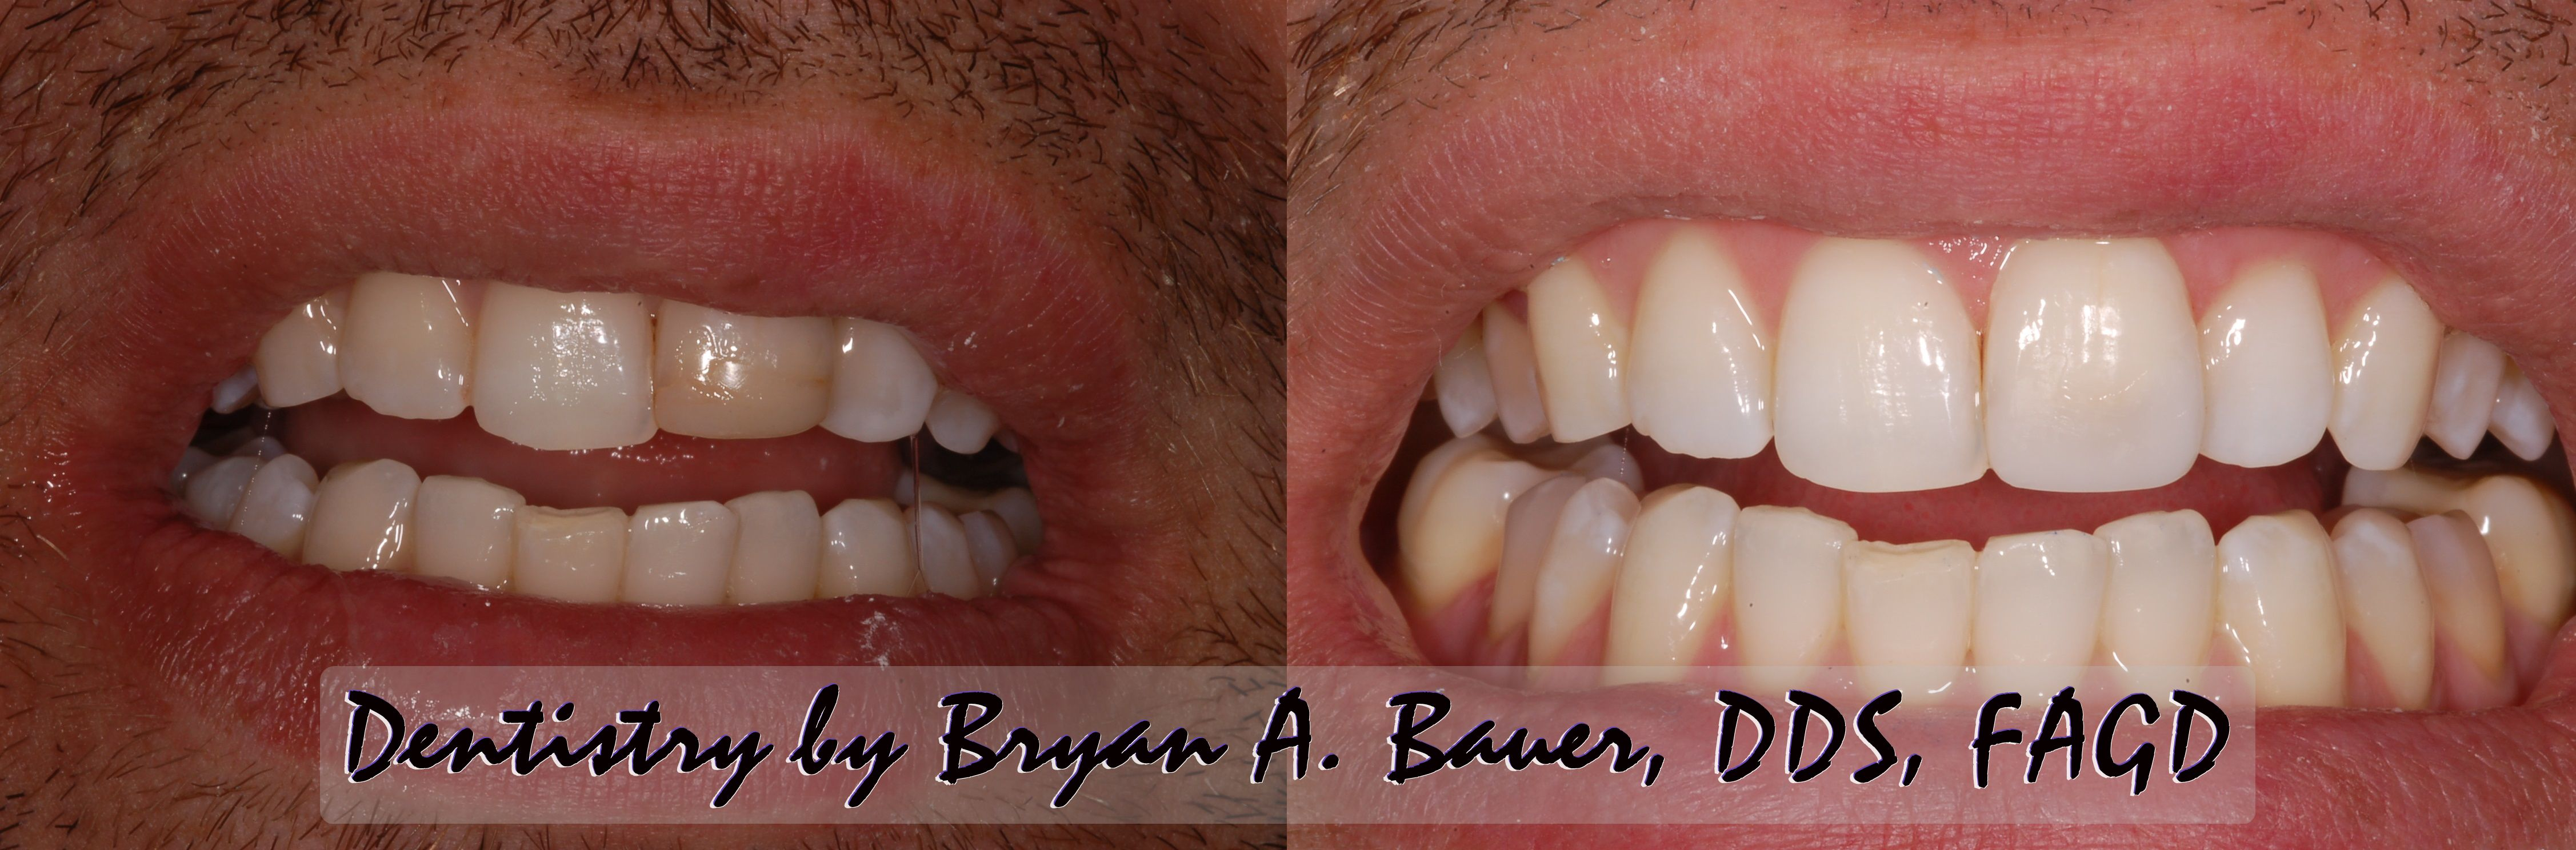 Facial tooth composite